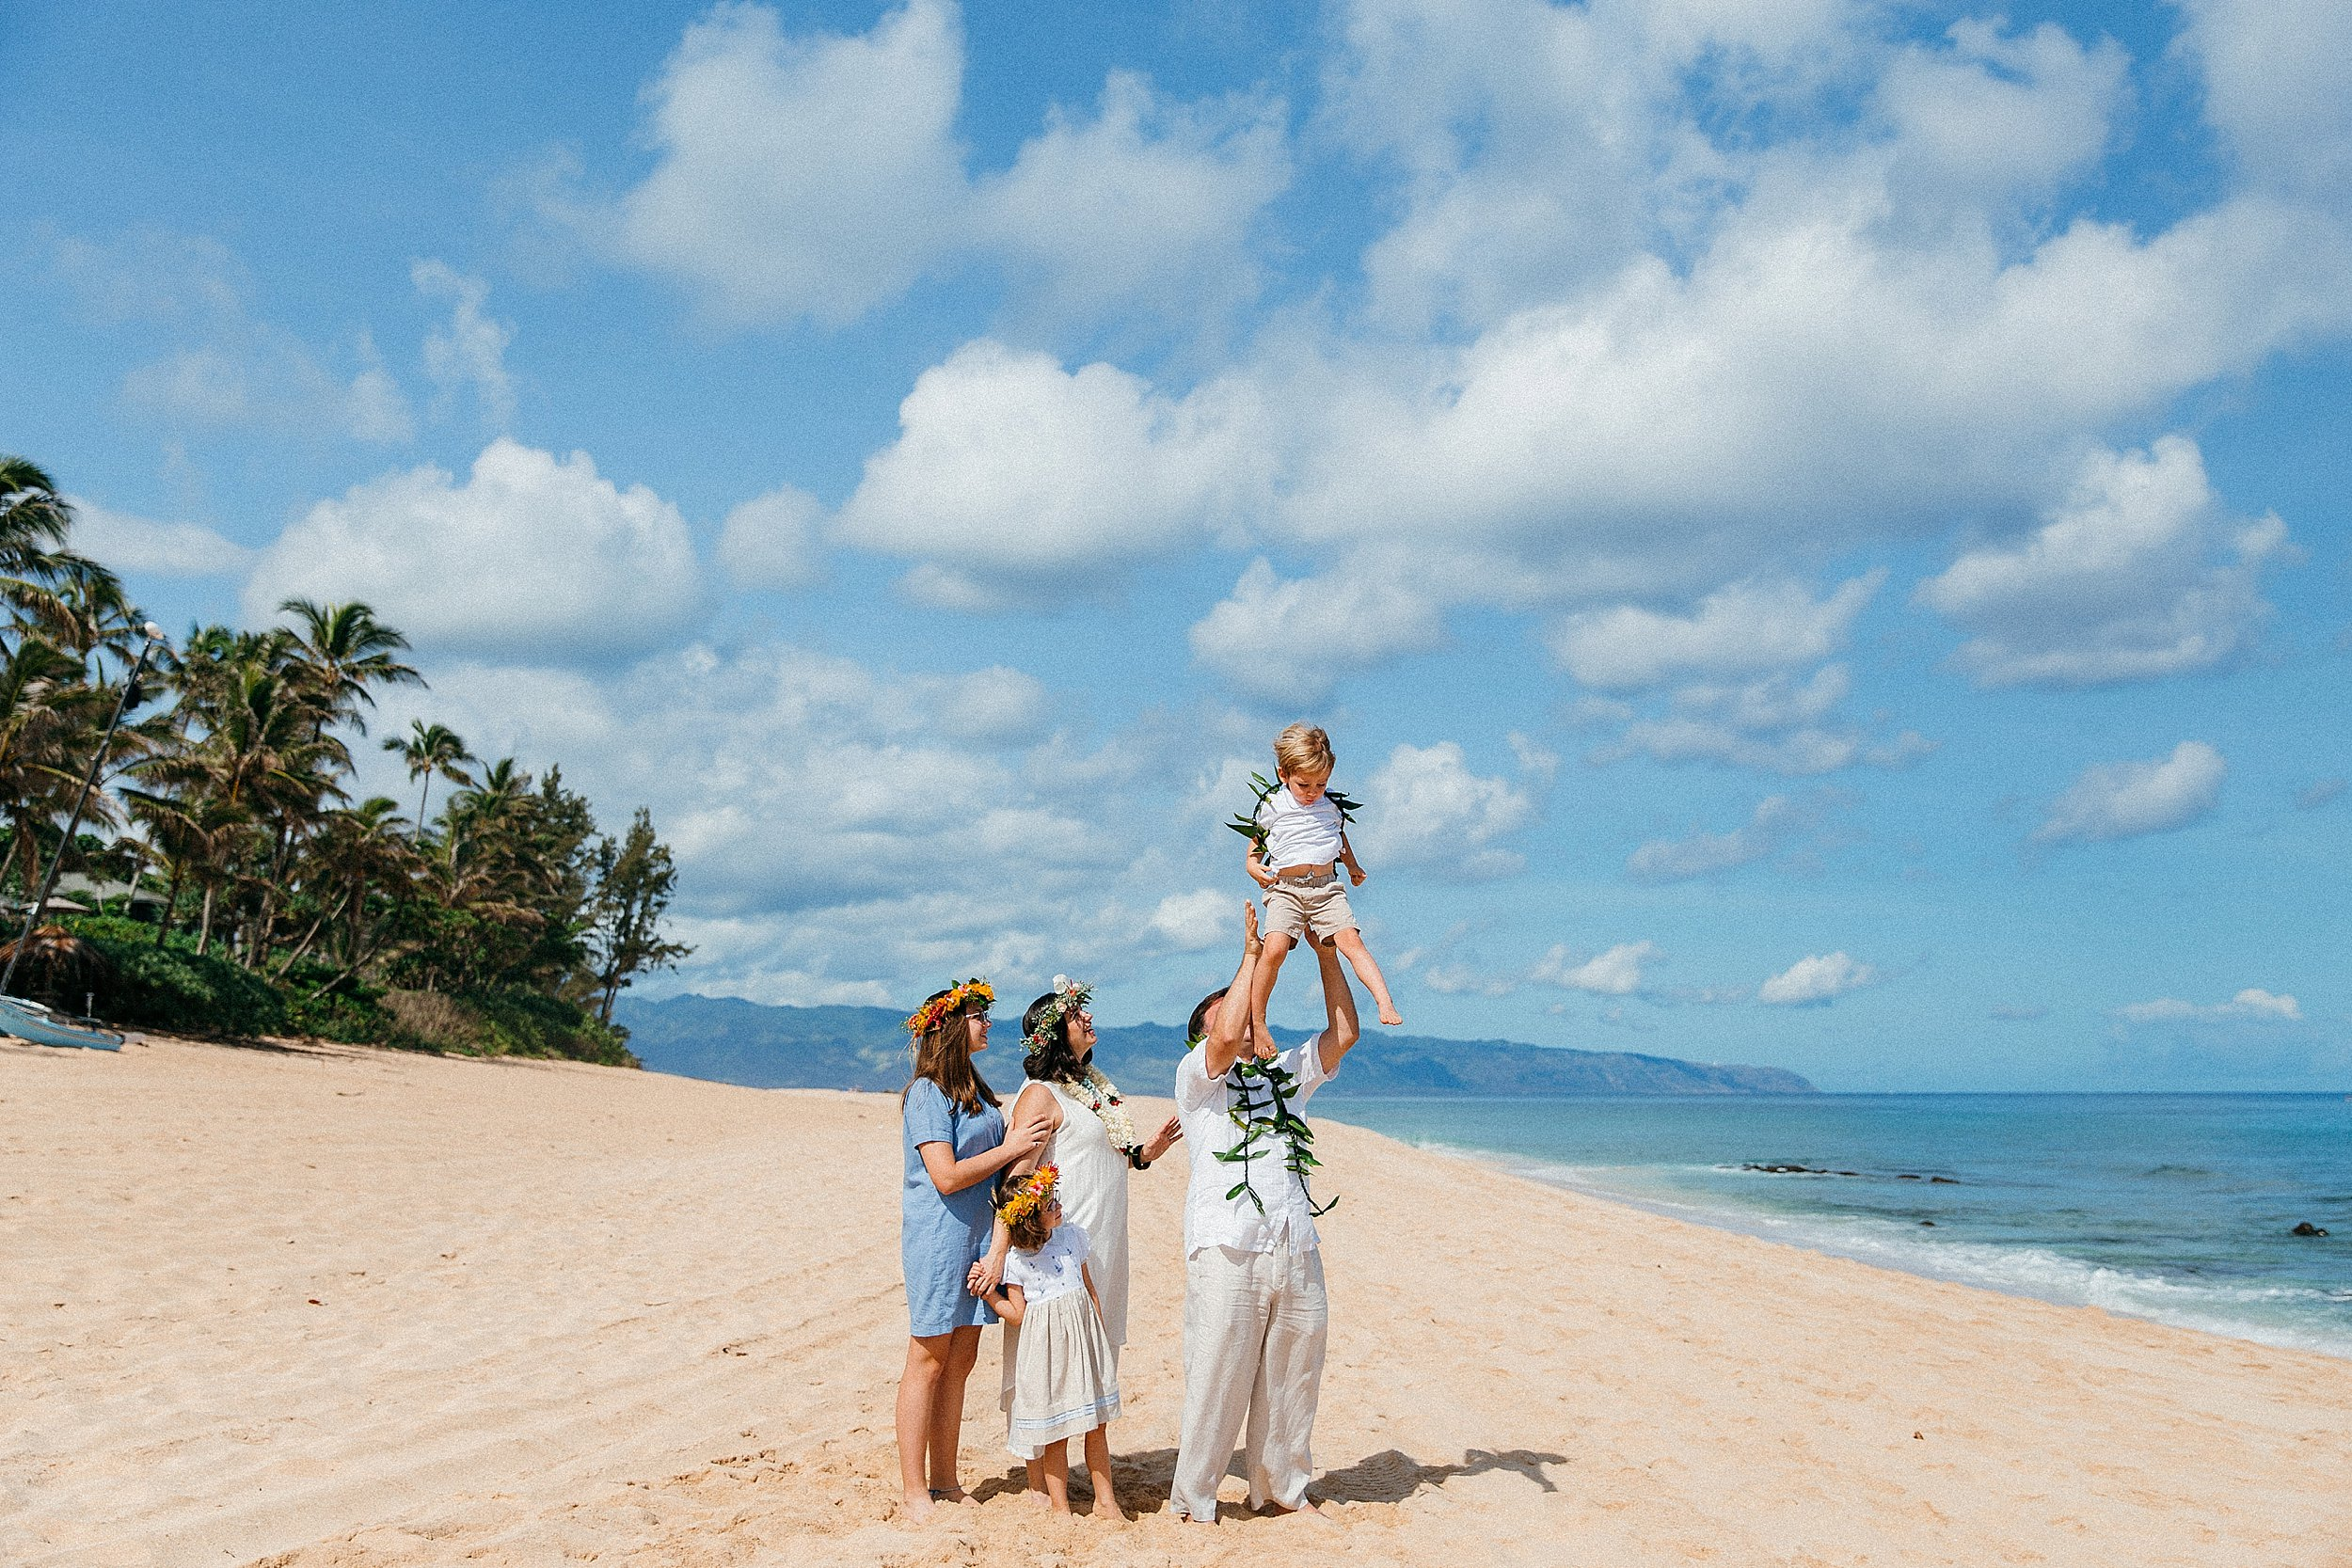 The Roukema Family playing together on the beach in front of the West Side mountain range on Oahu's North Shore.